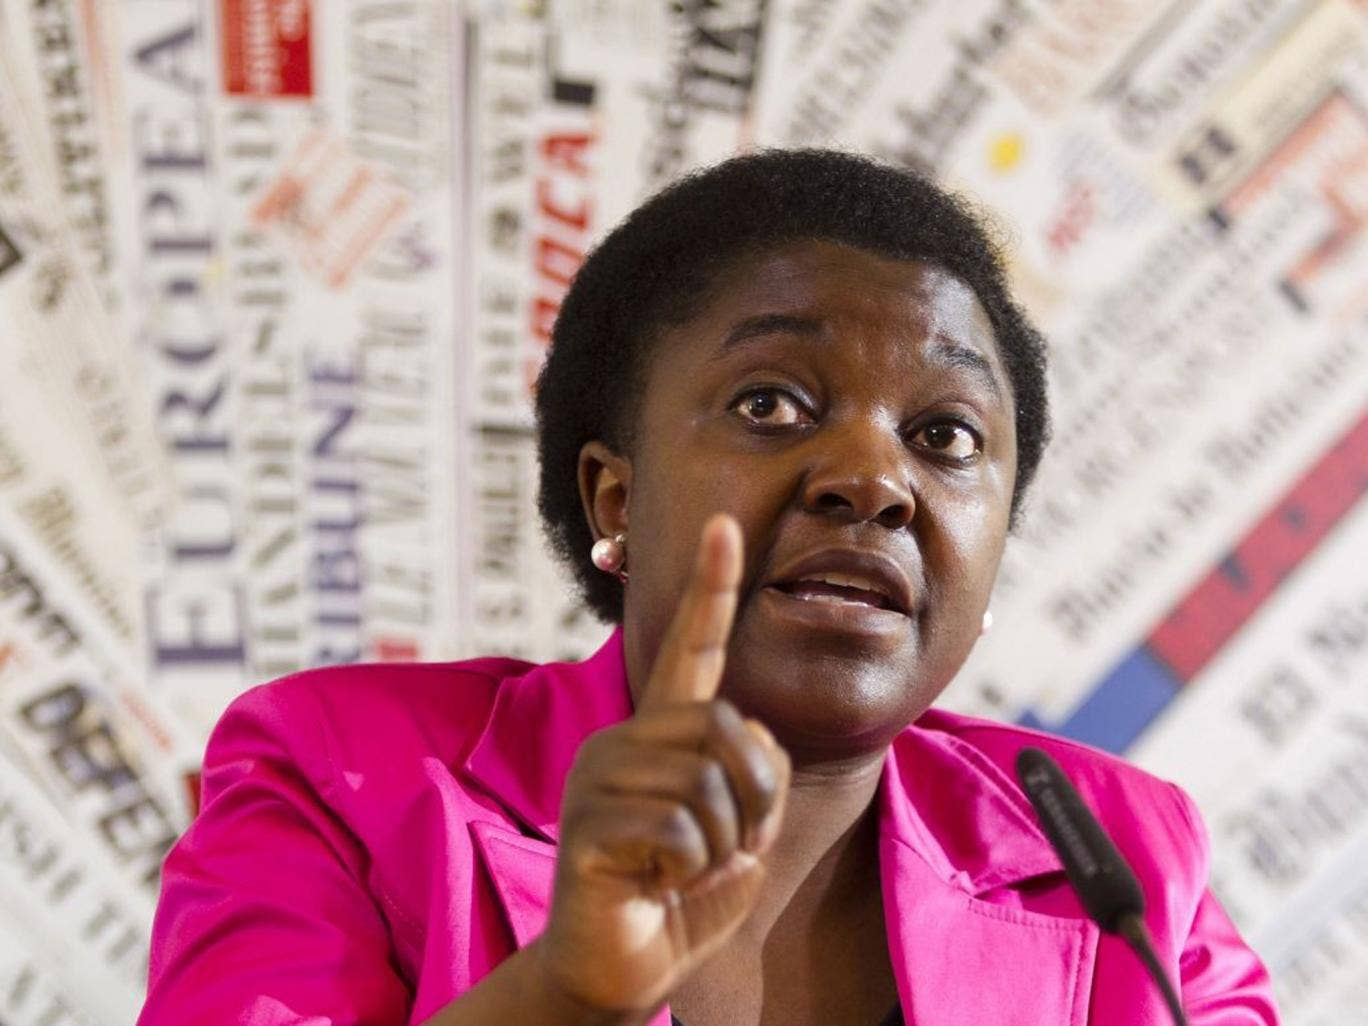 Kyenge, who is the minister for Integration, and is originally from the Democratic Republic of Congo, was speaking at a political rally Cervia in central Italy on Friday, when someone in the audience threw bananas towards the stage, narrowly missing it.